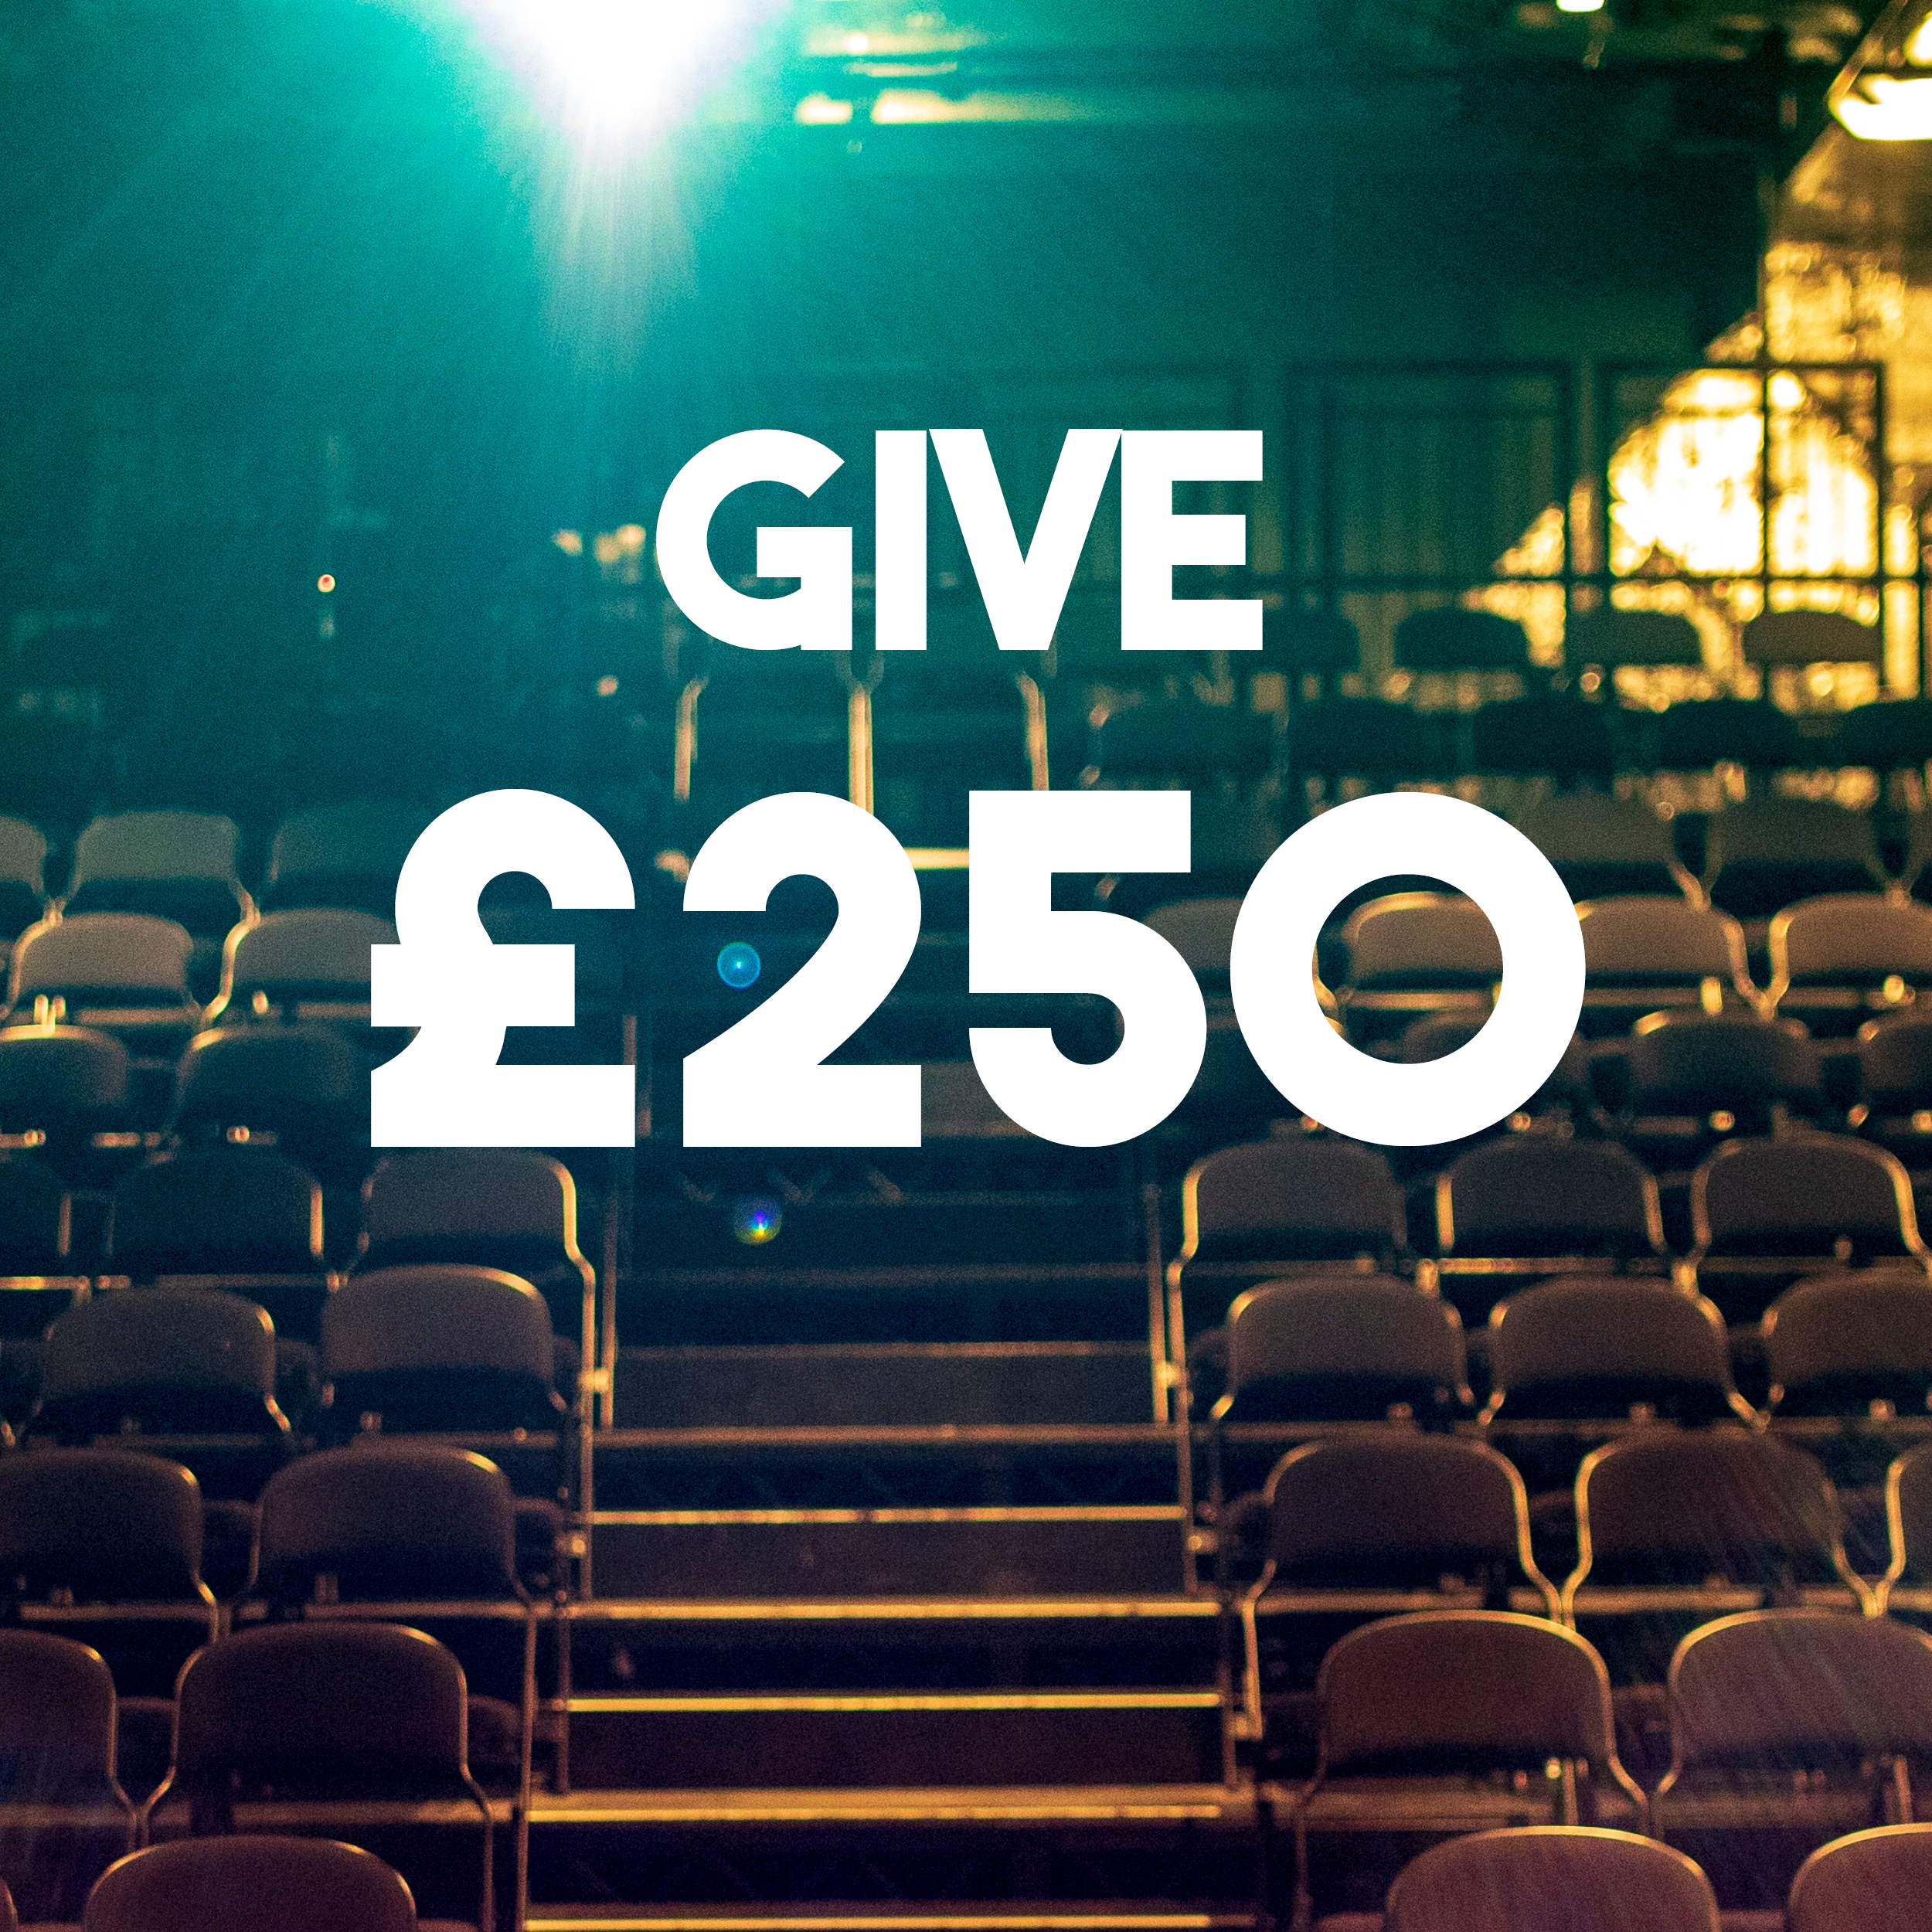 £250 pays a day's worth of in-kind rehearsal space for an emerging artist.